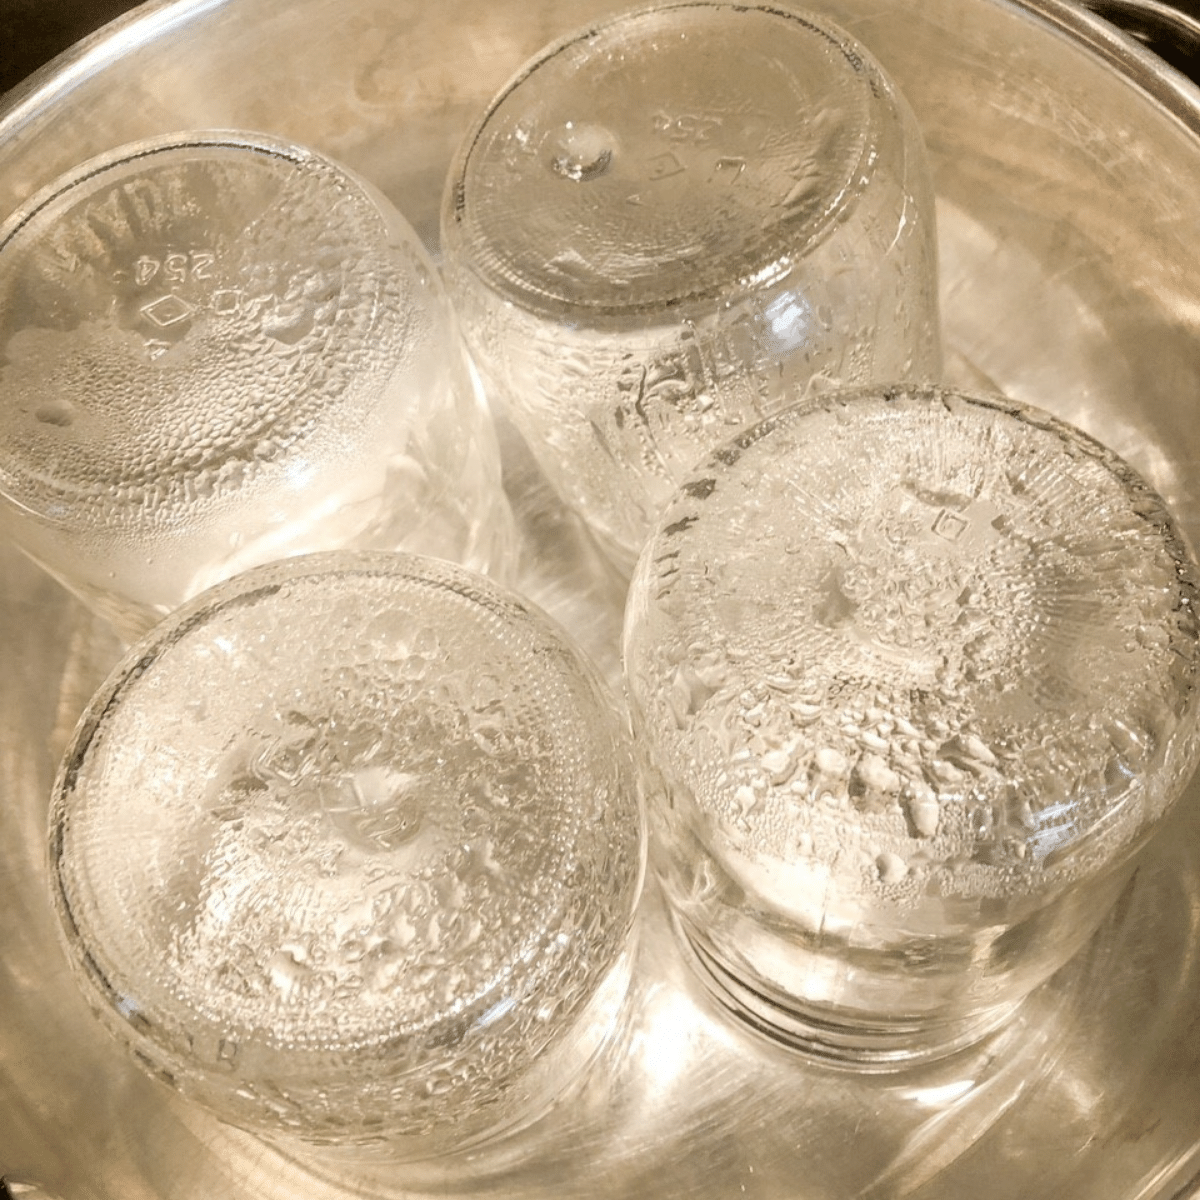 Four clean sterilized canning jars heating up in a pot of water